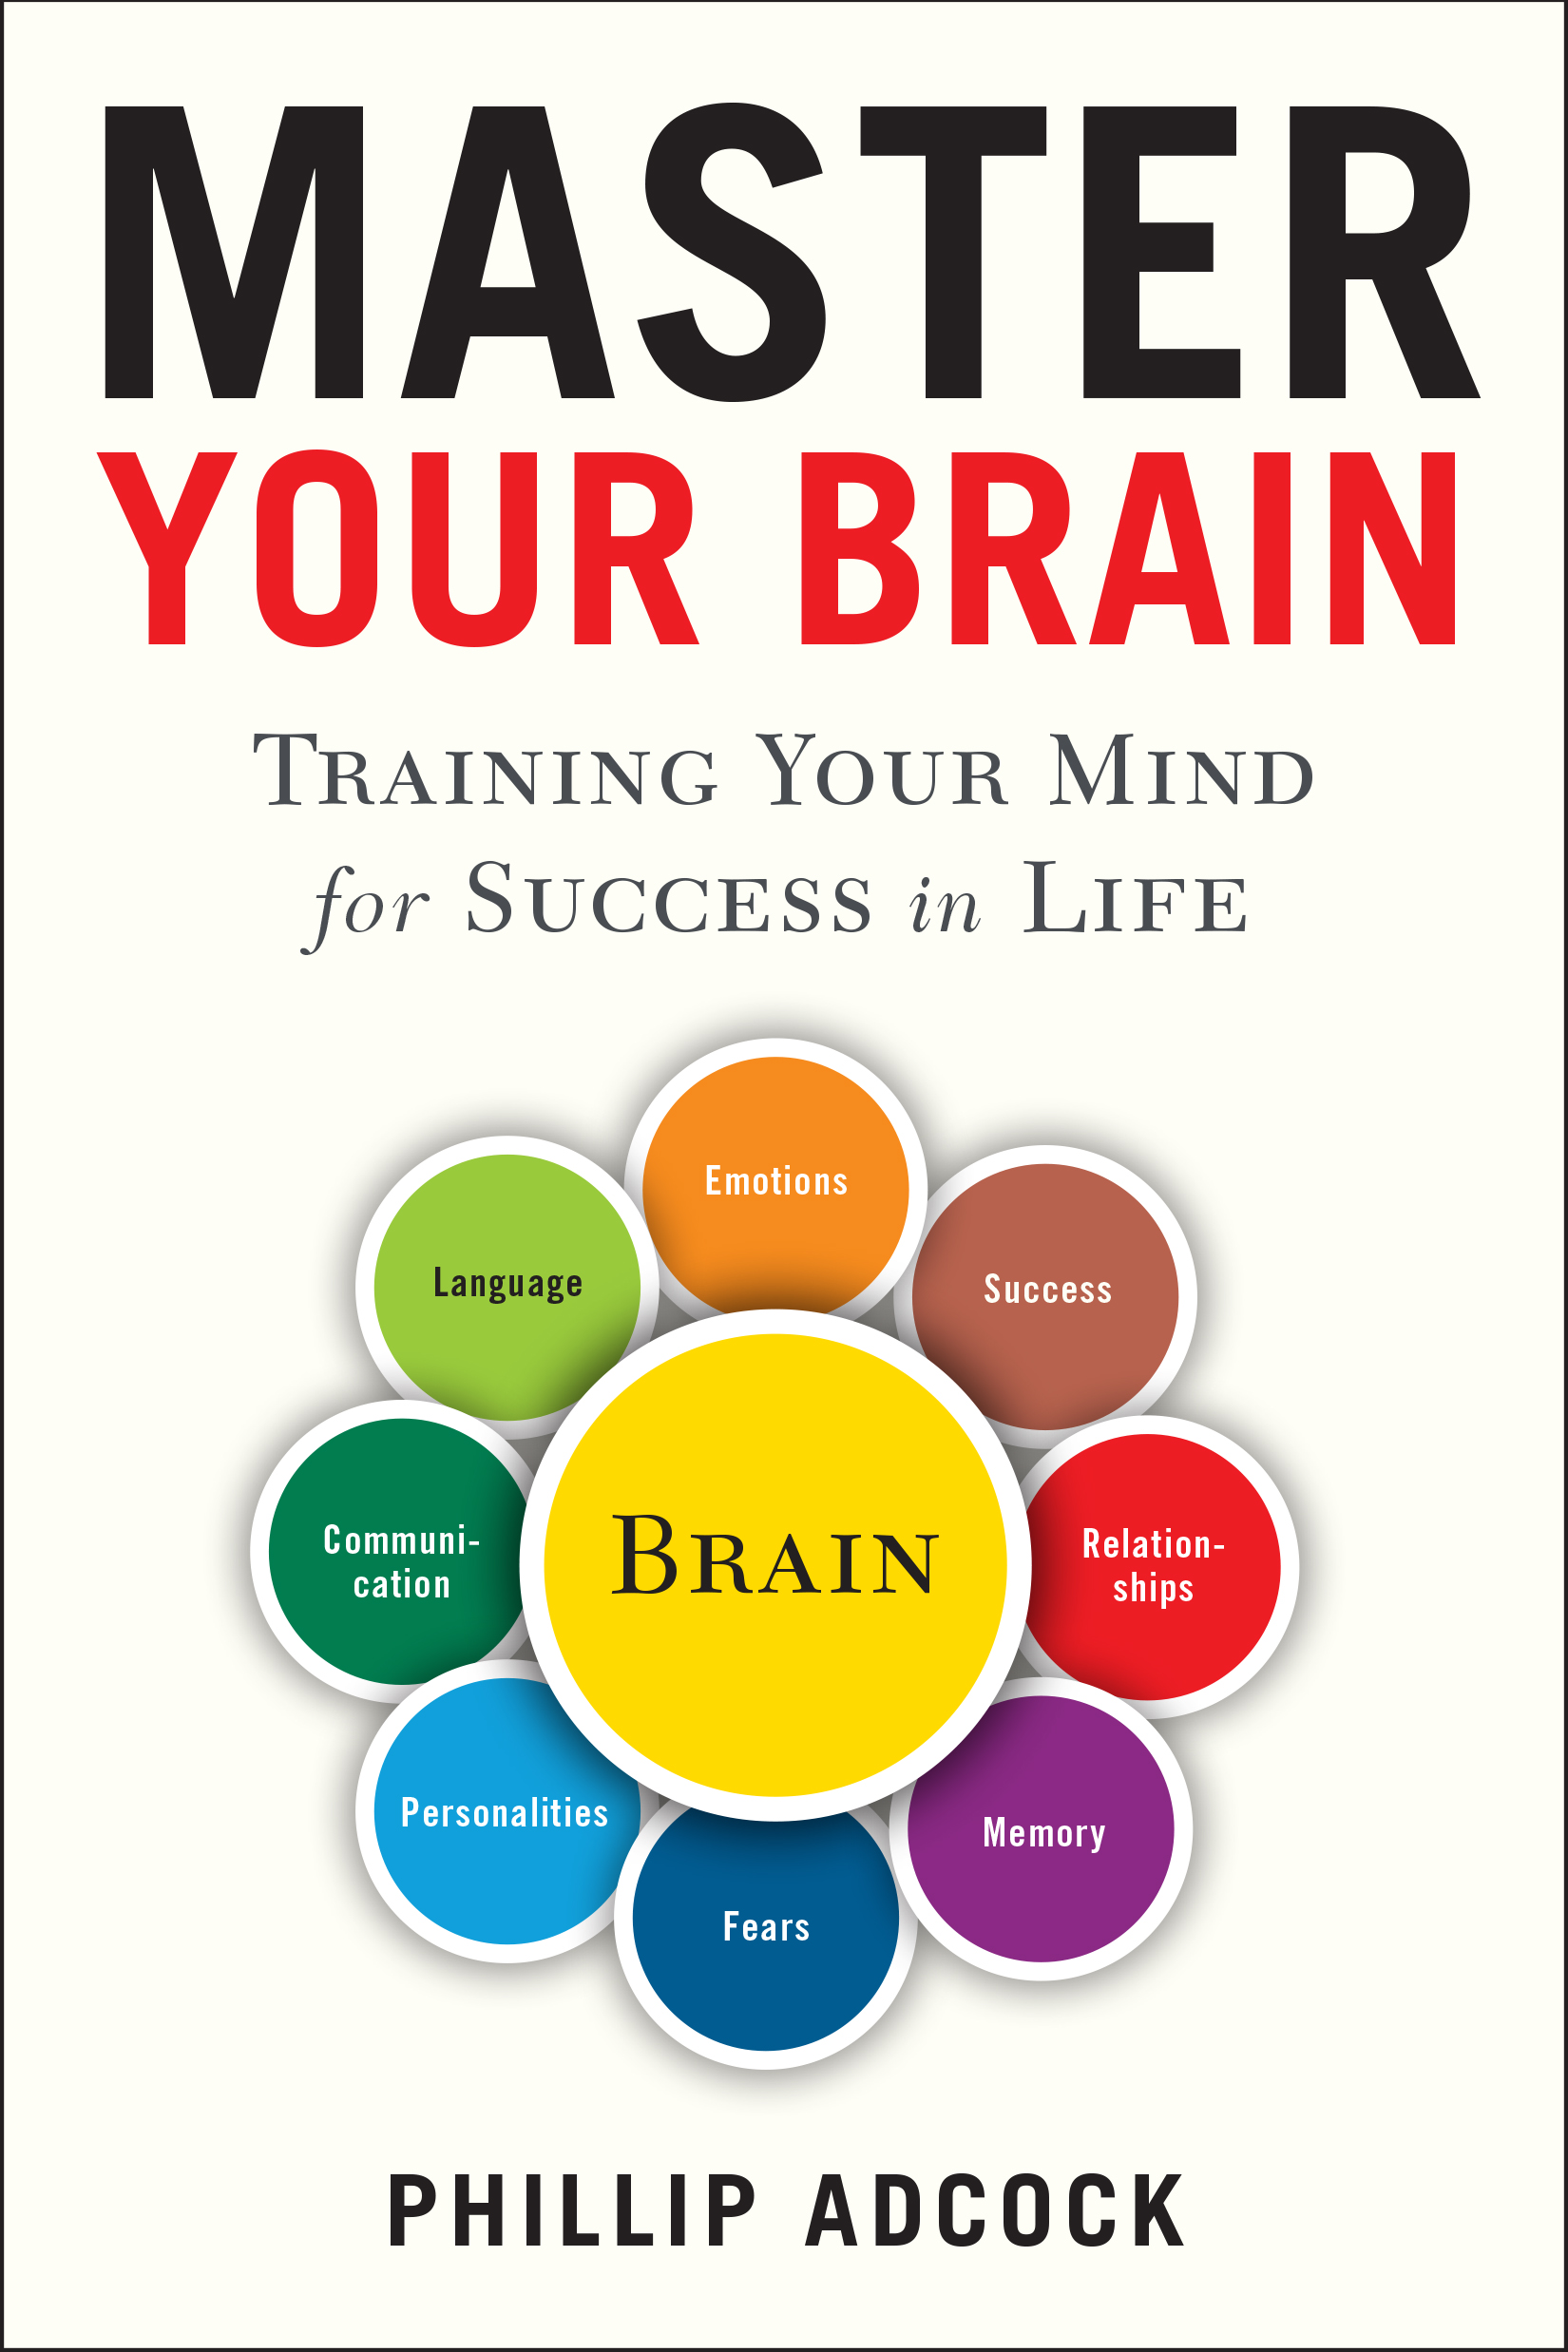 Master Your Brain by Philip Adcock